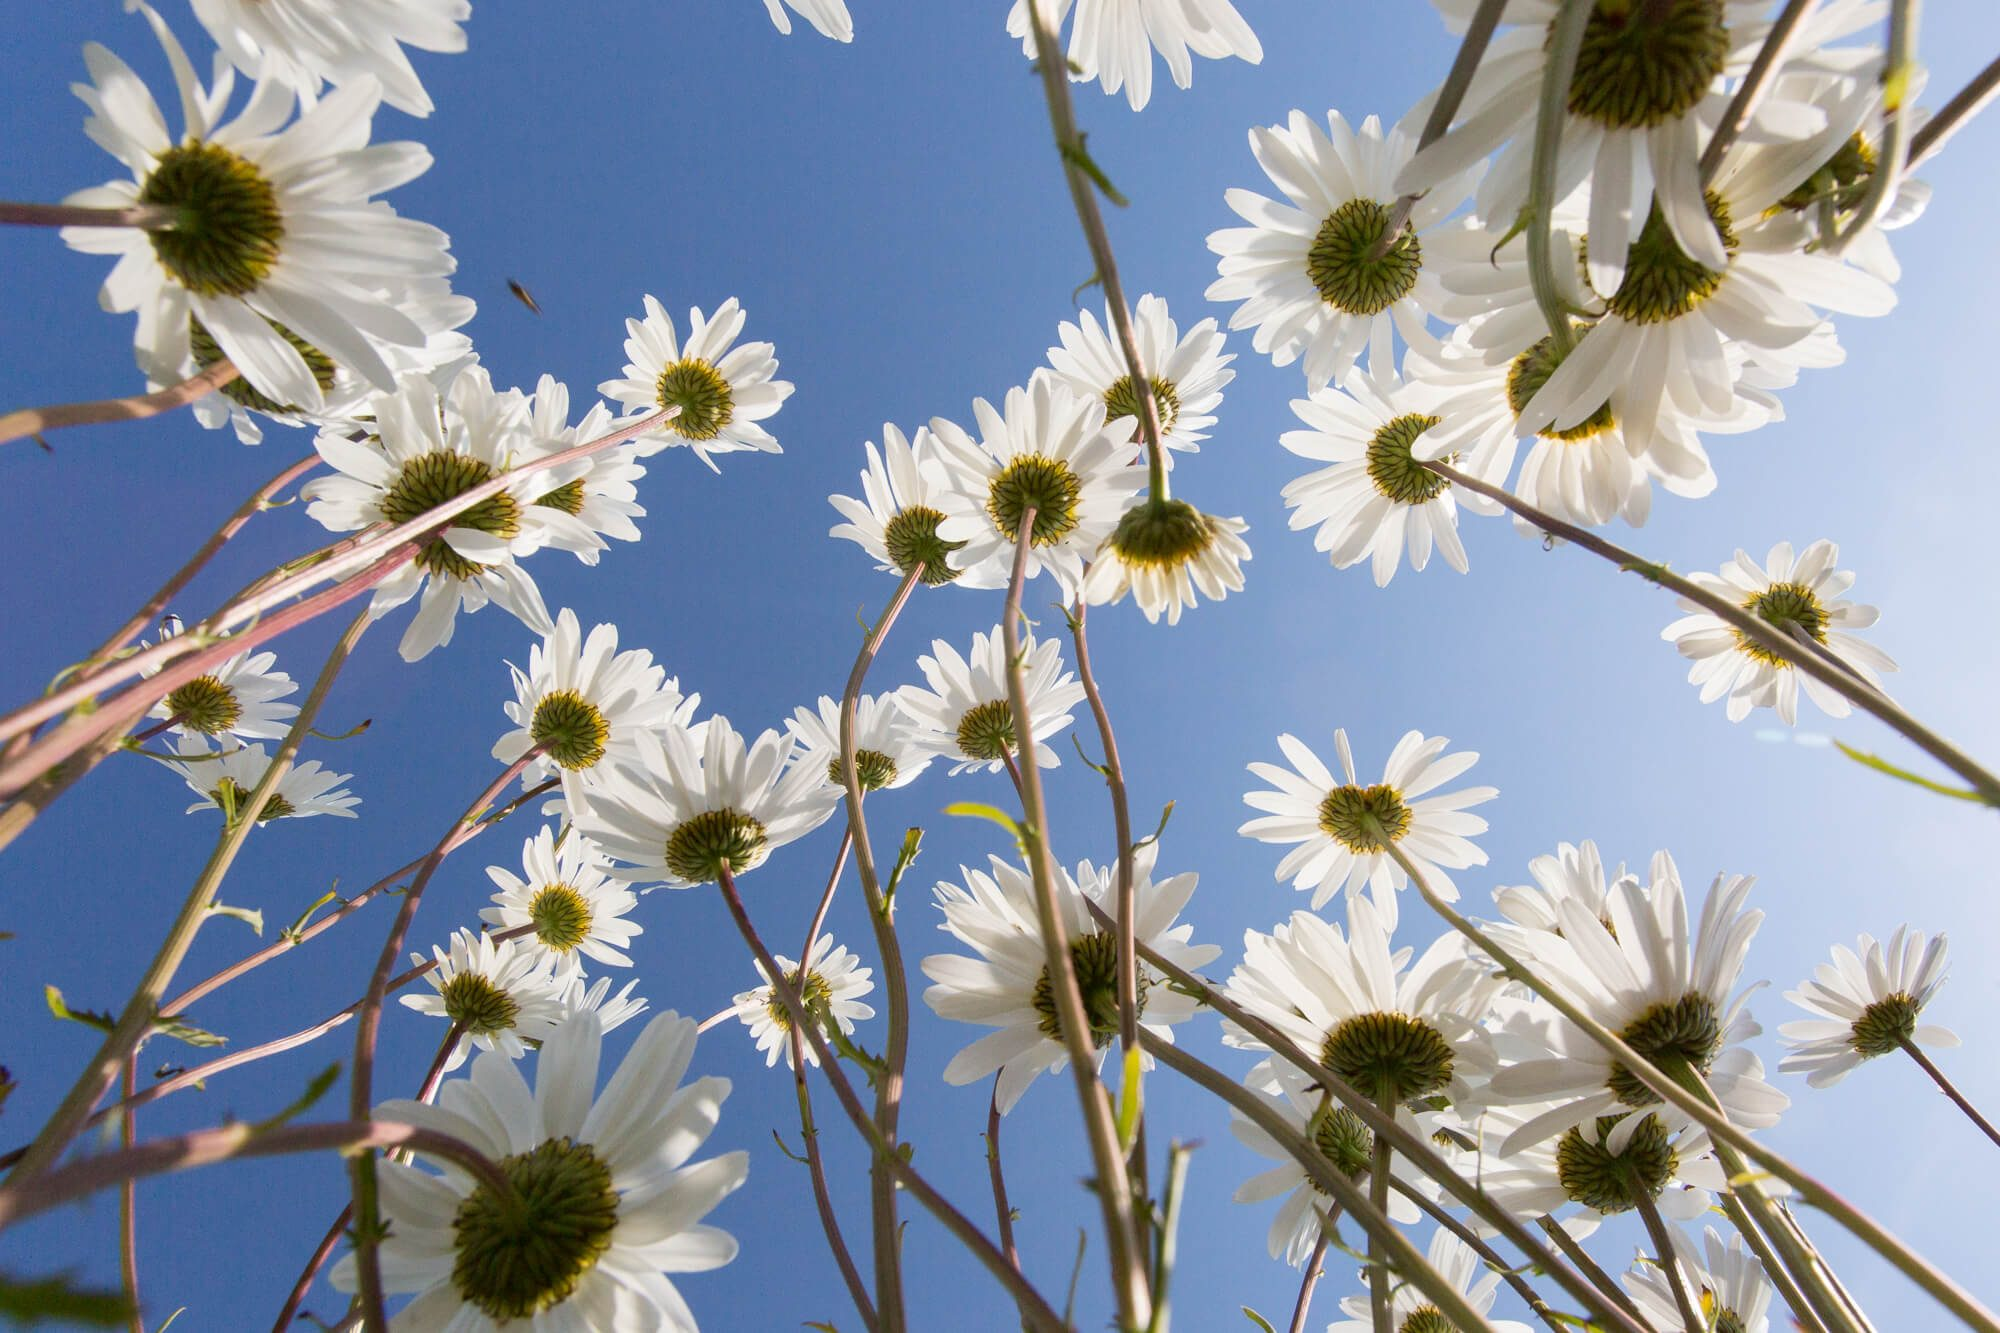 Daises Reaching Towards a Blue Sky